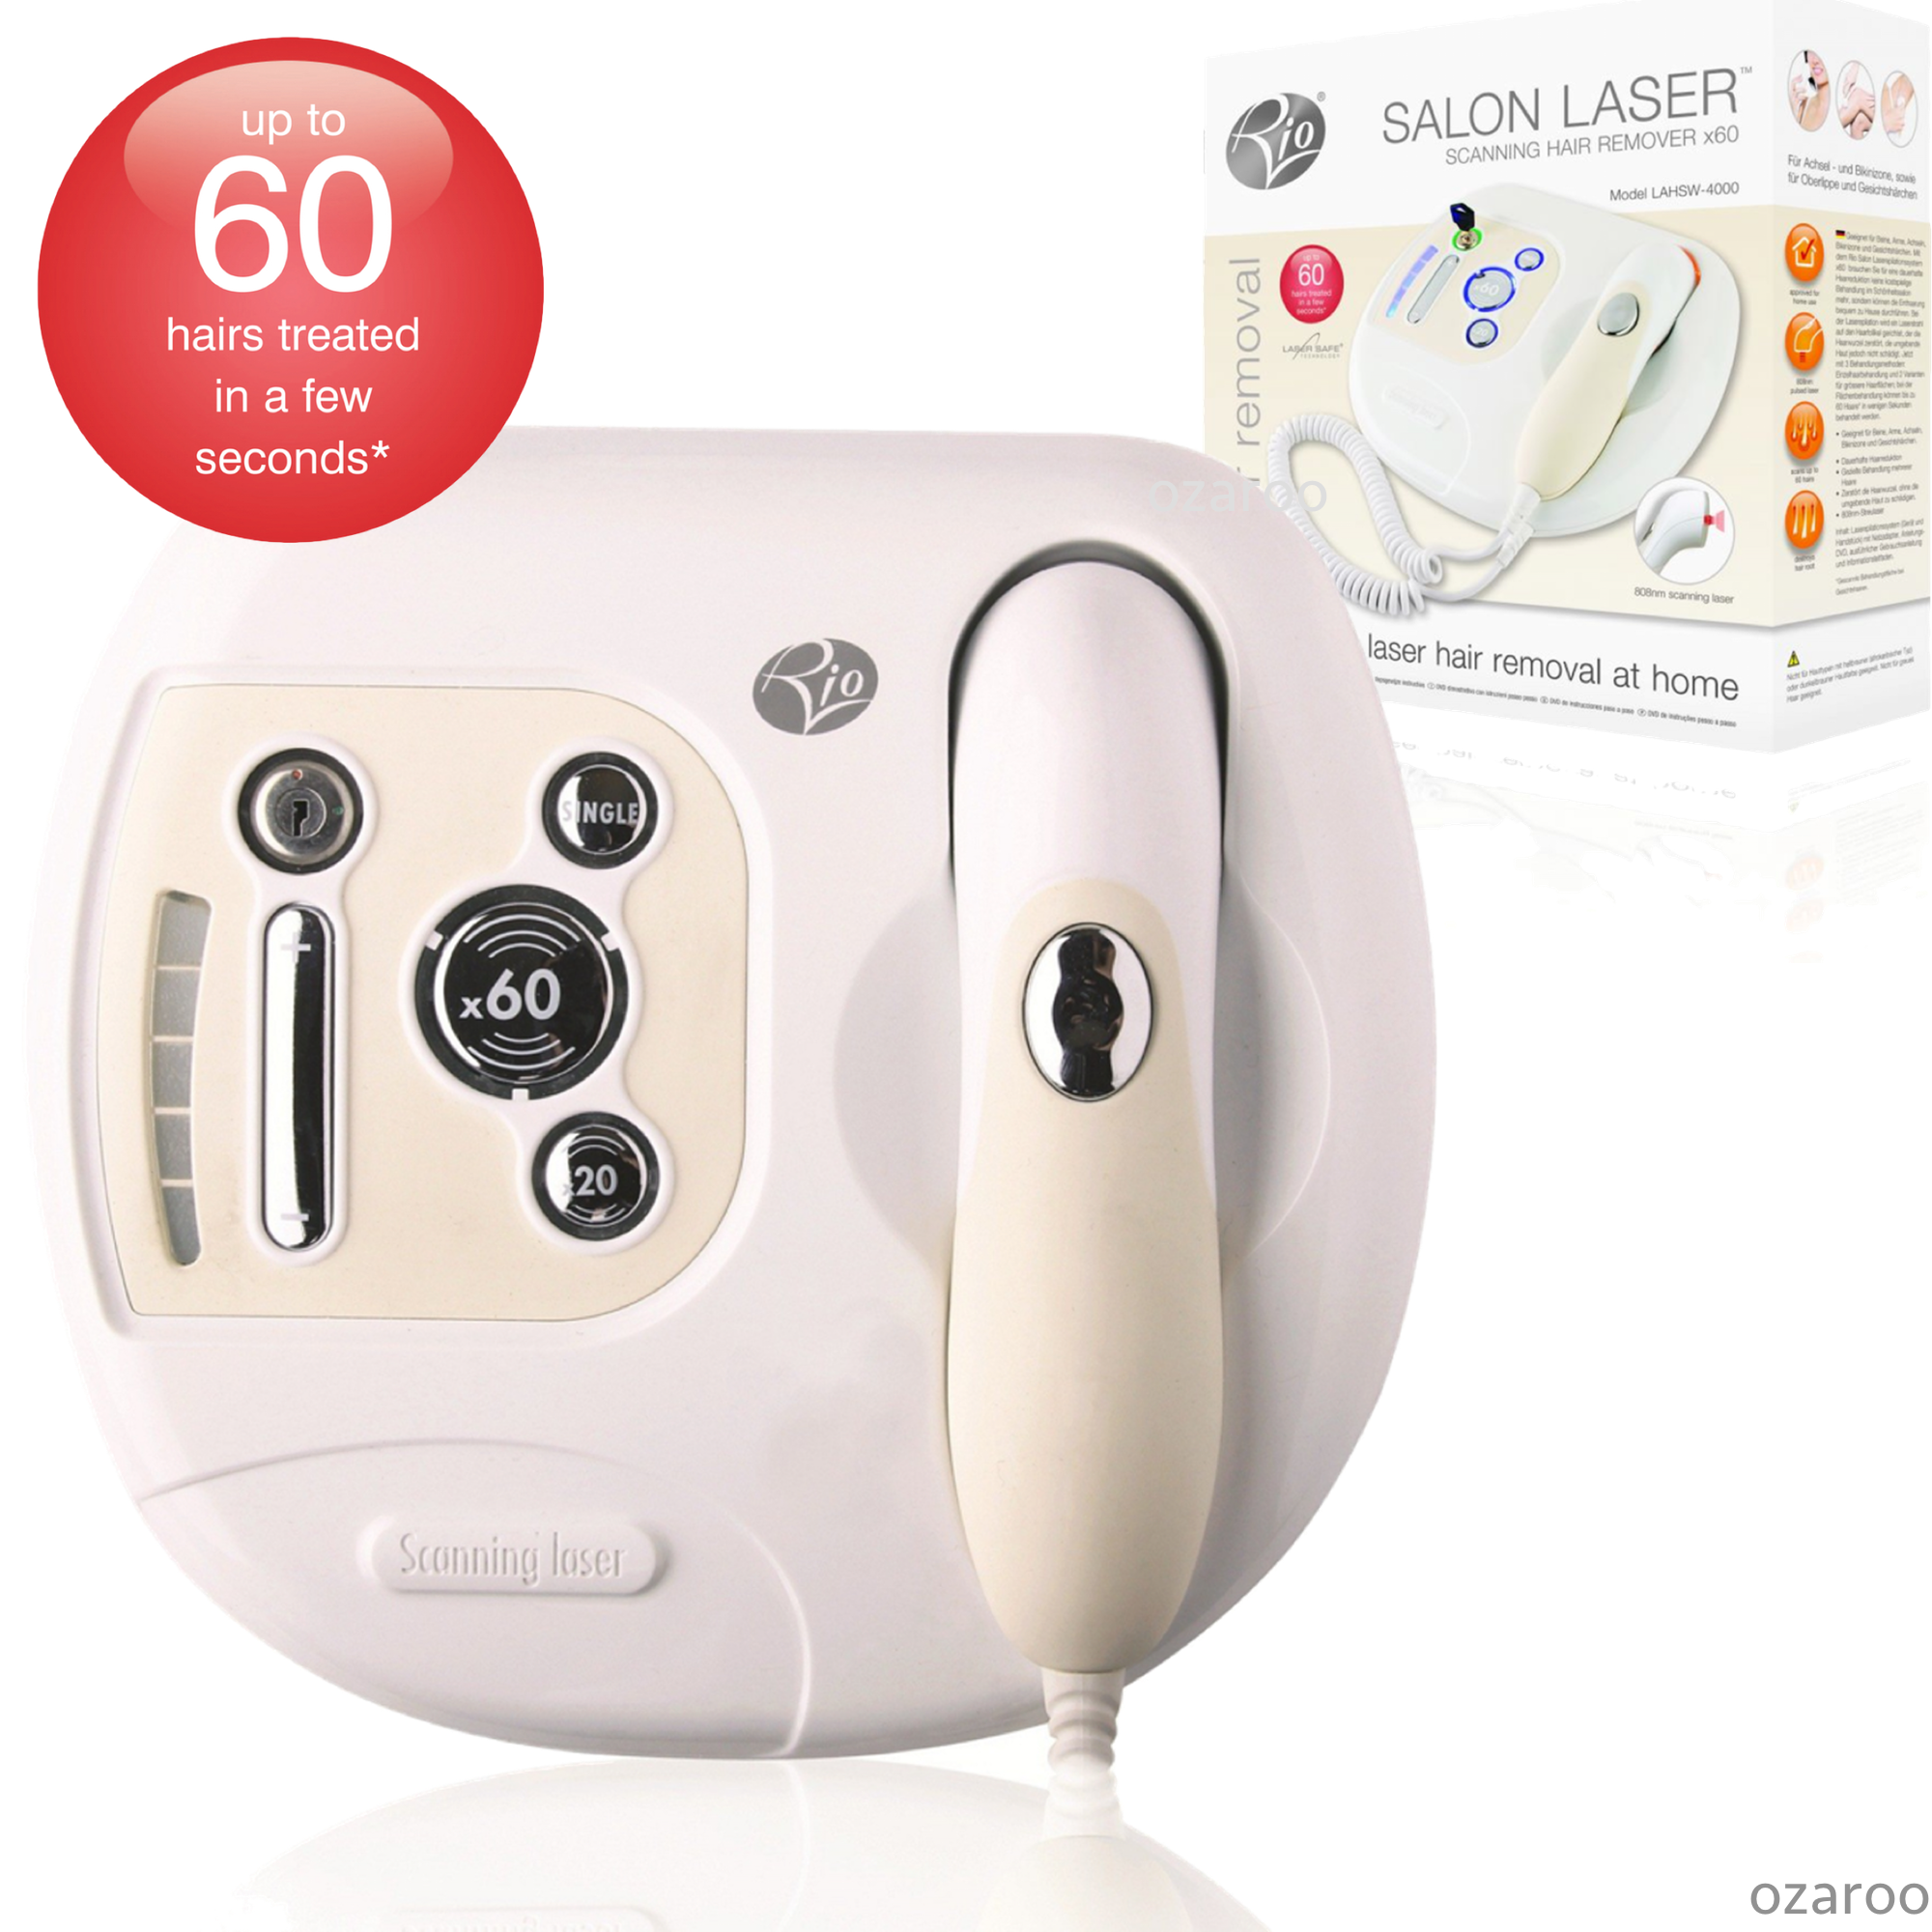 Rio Beauty Scanning Up to x 60 Hairs Laser Legs, Body Hair Removal System Device